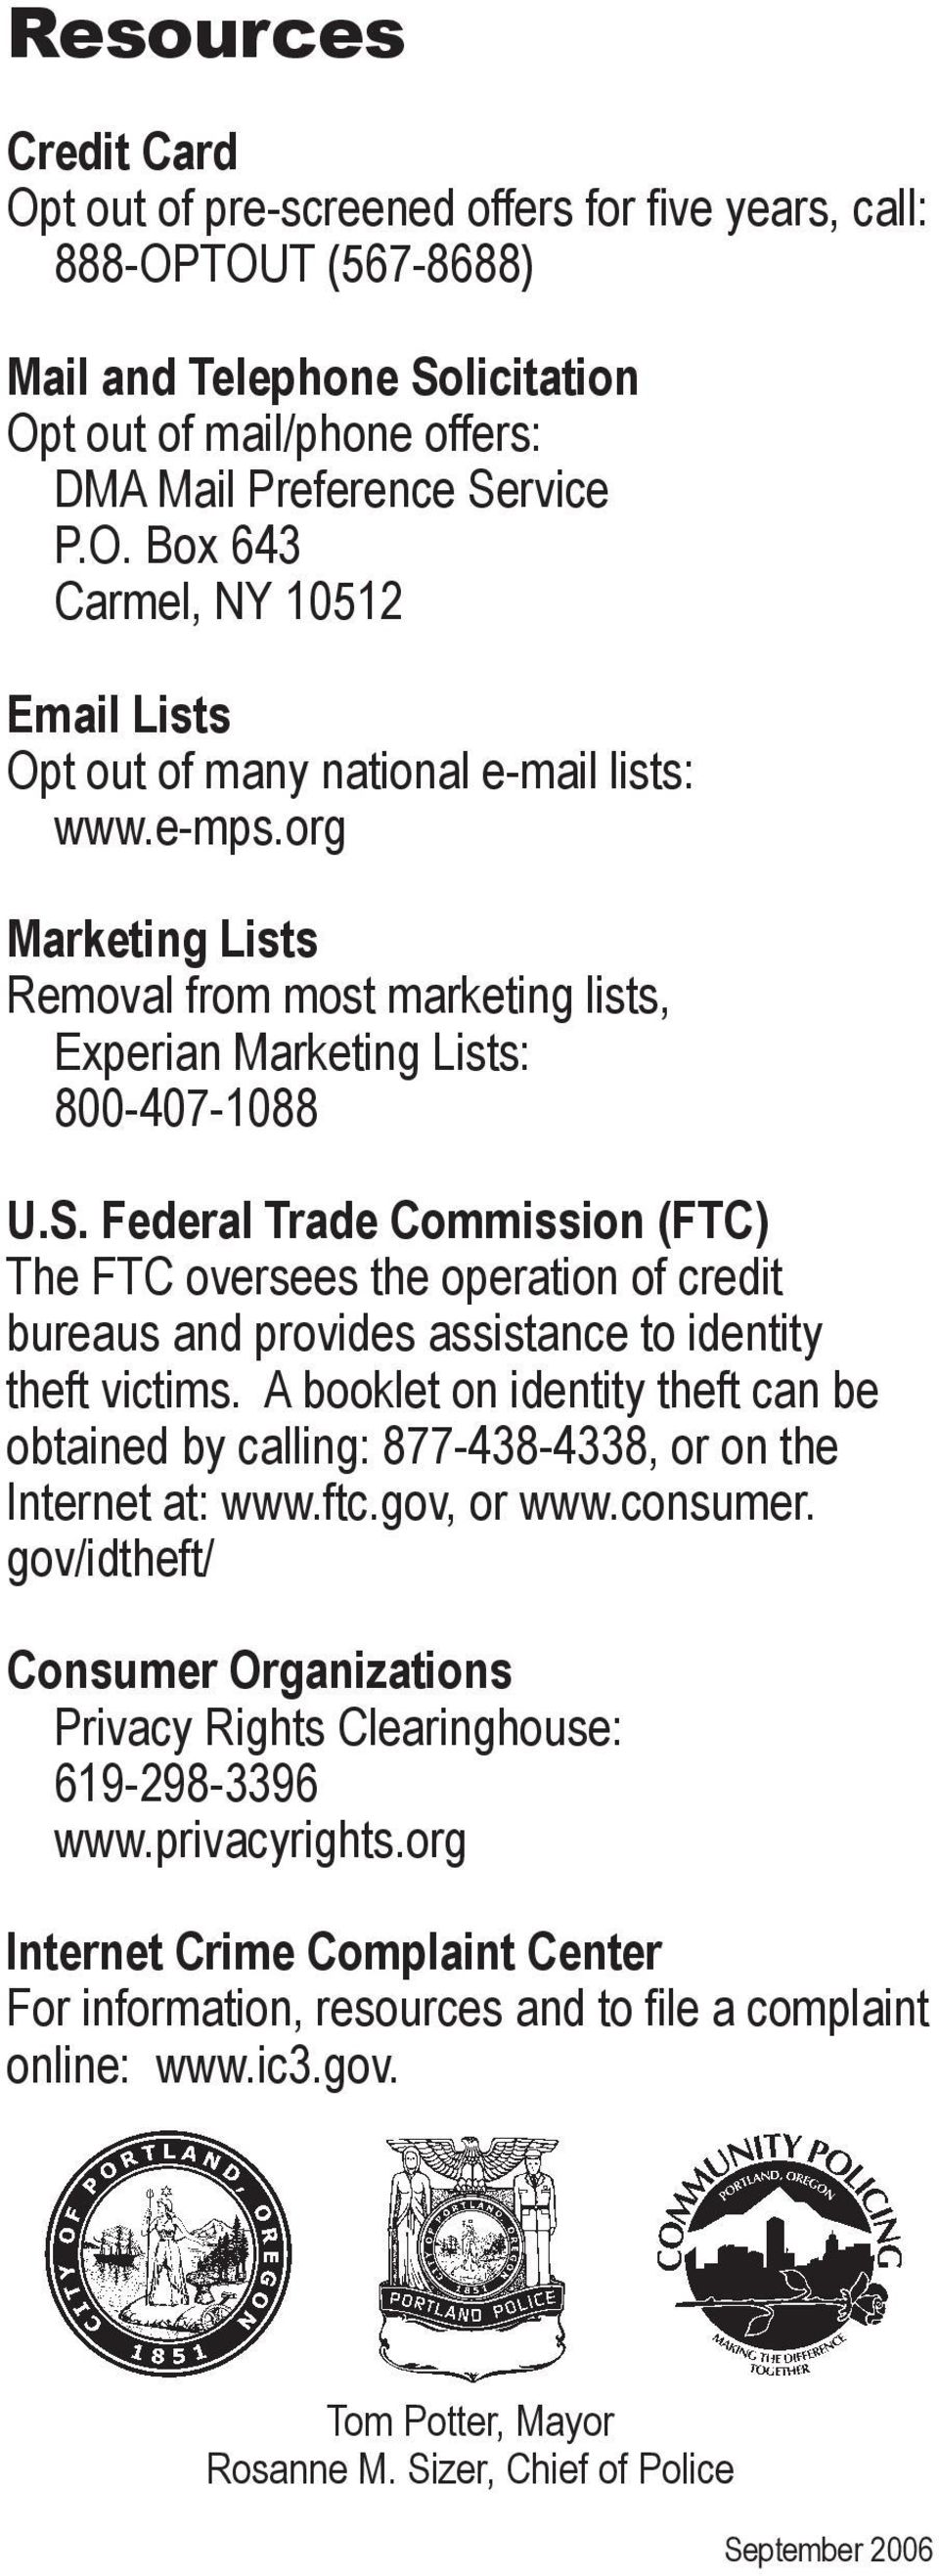 Federal Trade Commission (FTC) The FTC oversees the operation of credit bureaus and provides assistance to identity theft victims.